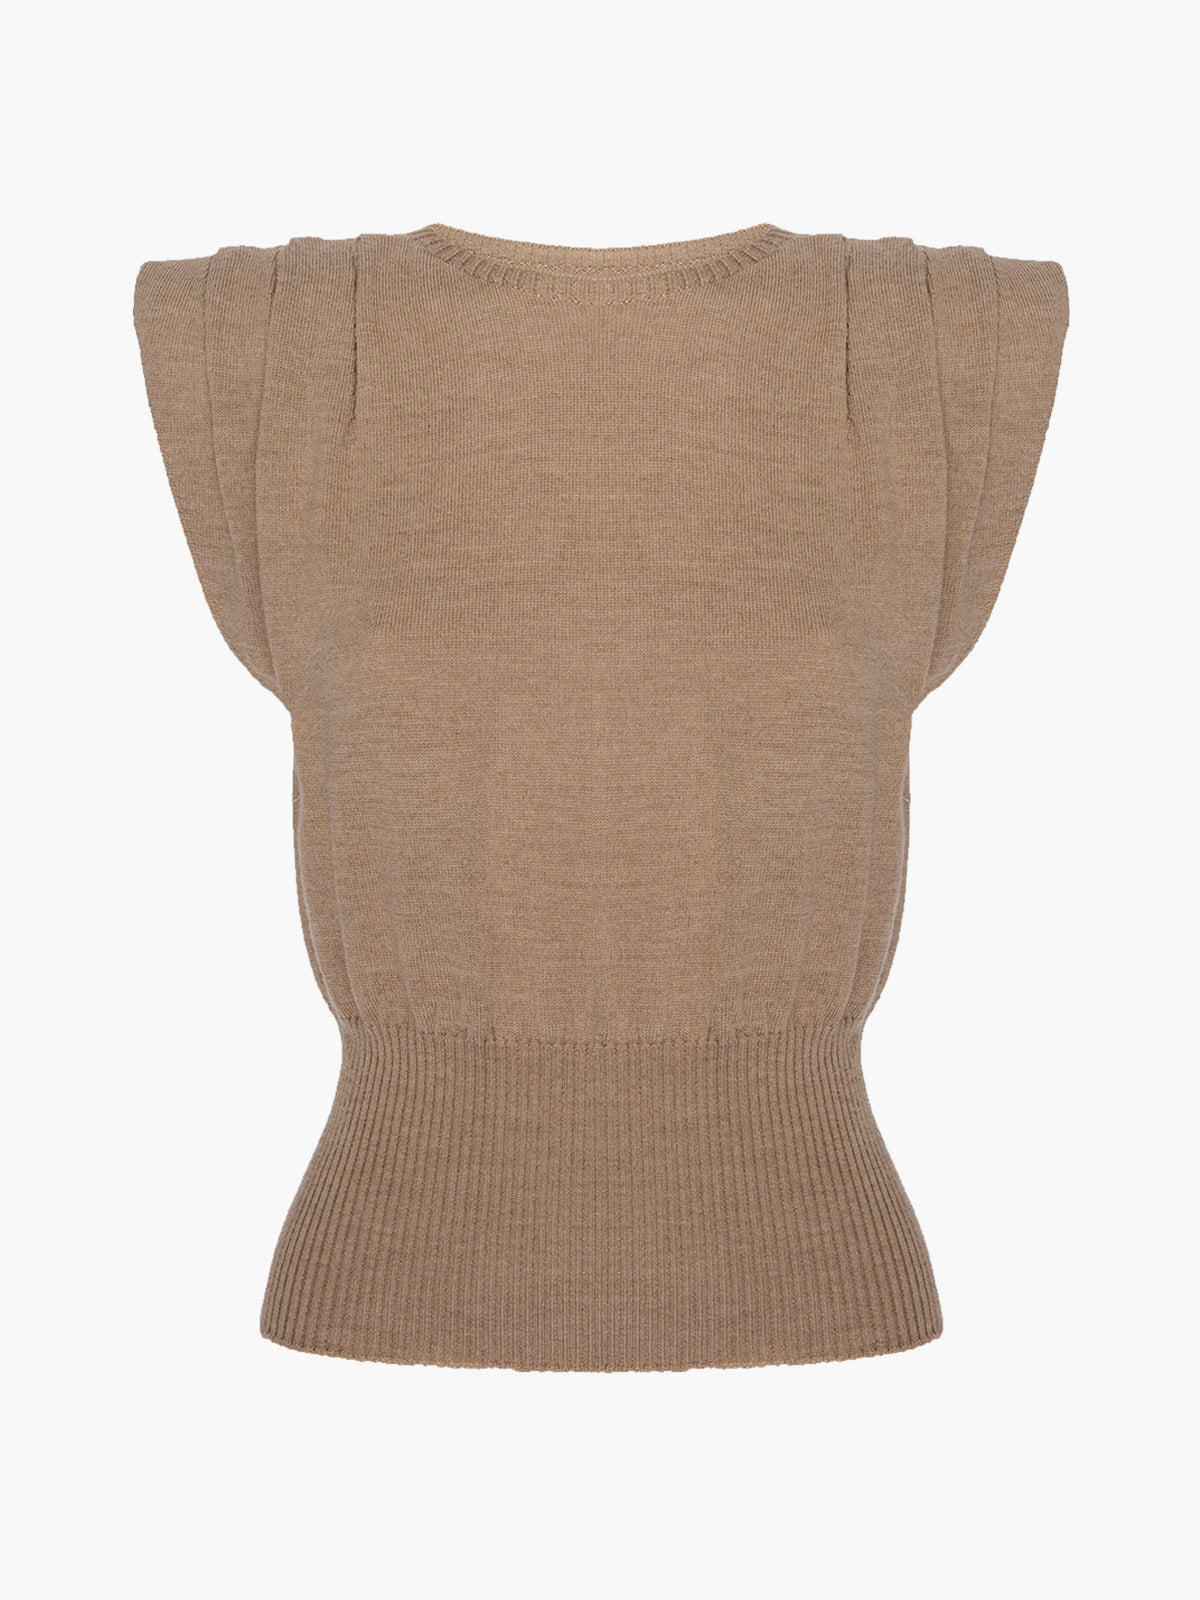 Sierra Padded Sweater | Camel